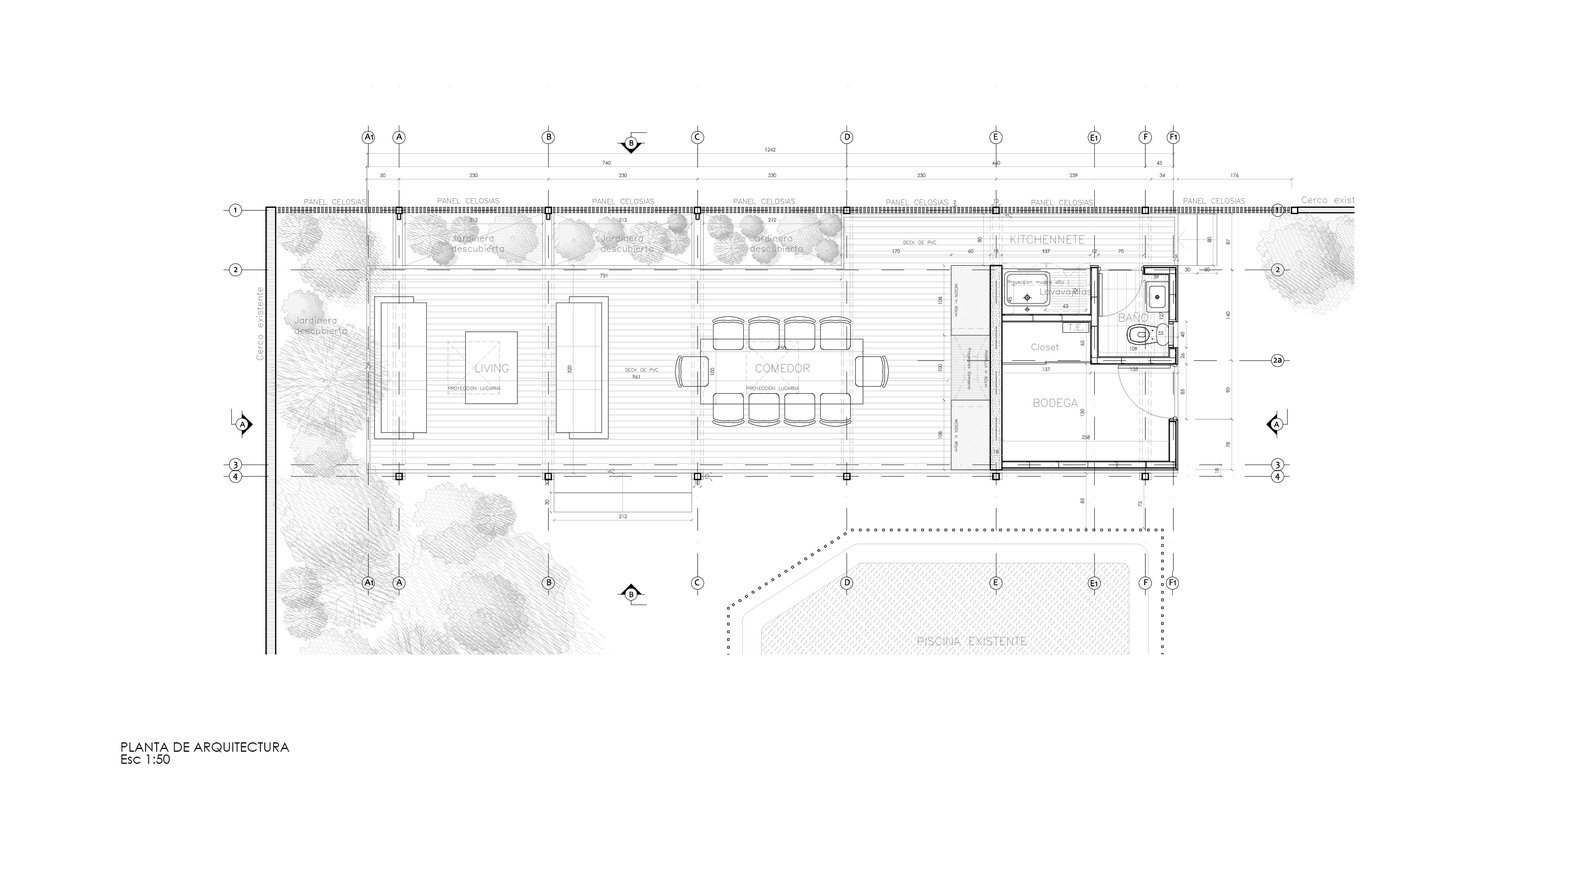 Pergola Pavilion - PAR Arquitectos - Chile - Floor Plan - Humble Homes